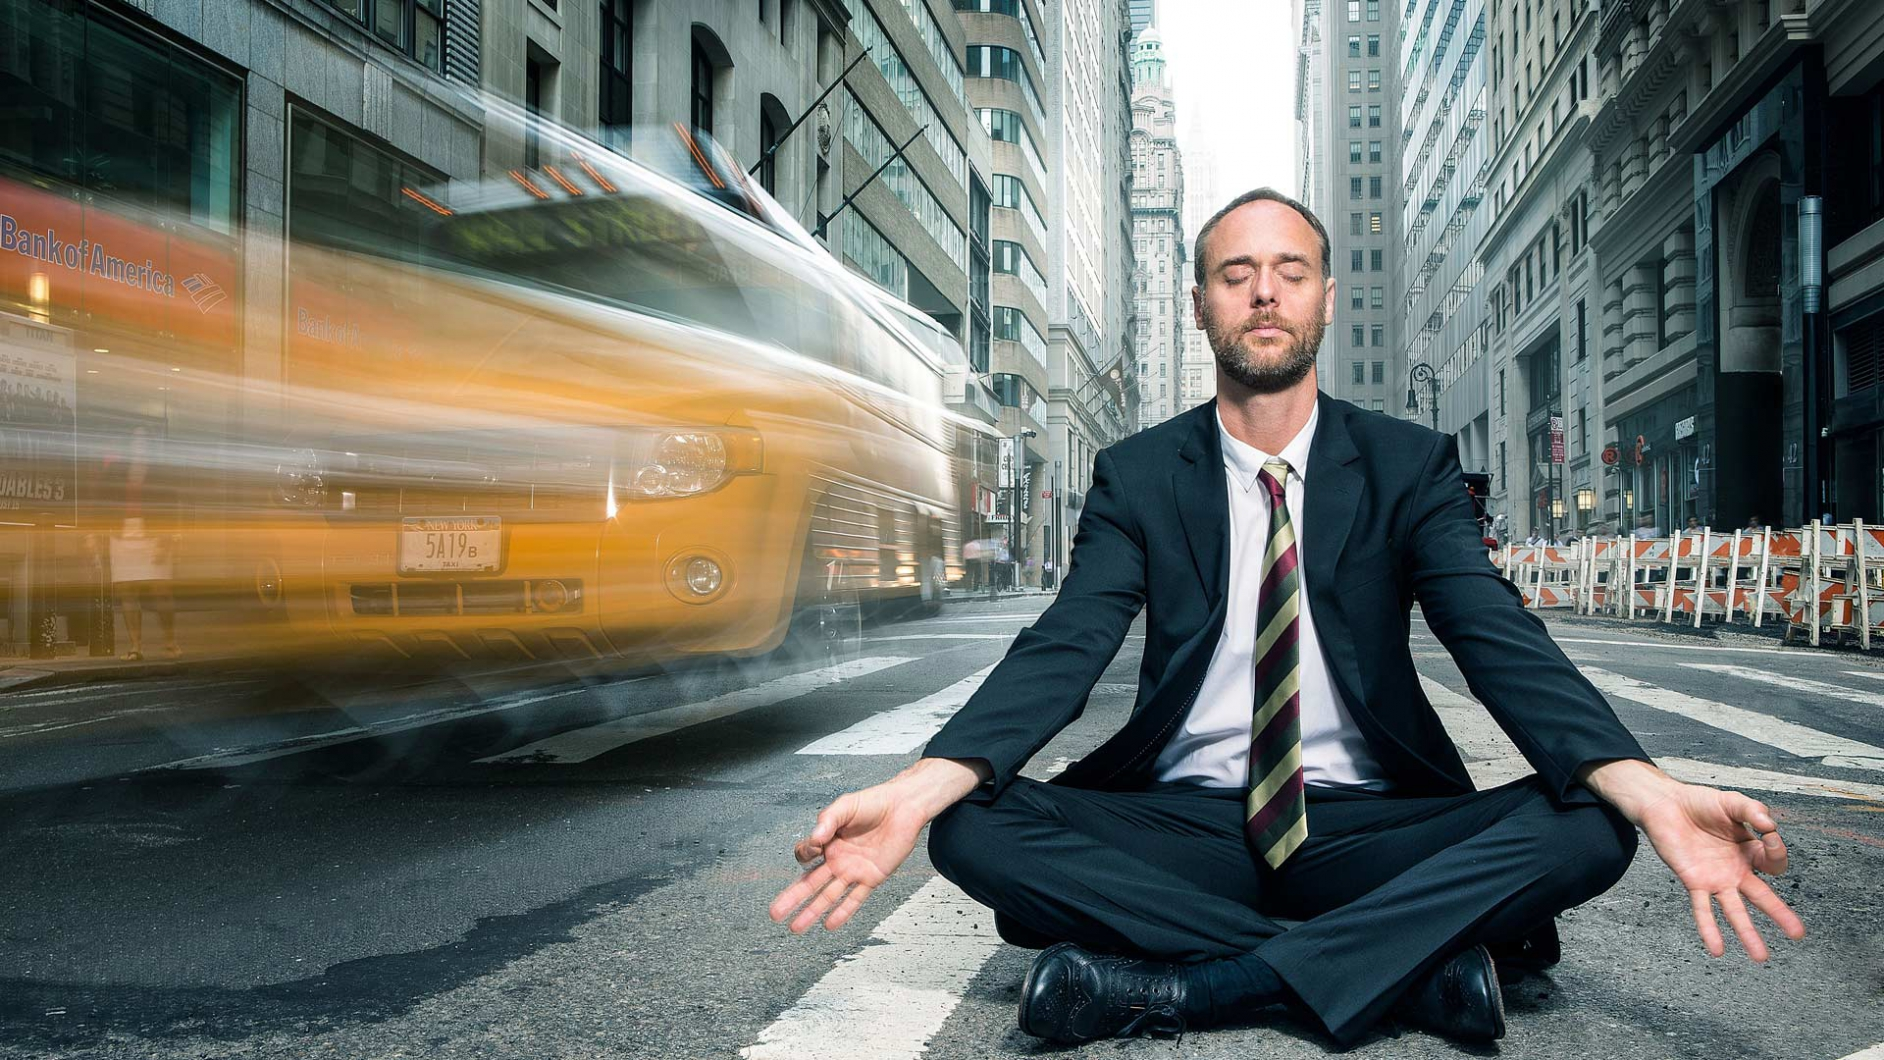 meditation-city-business-man-1884x1060.jpg